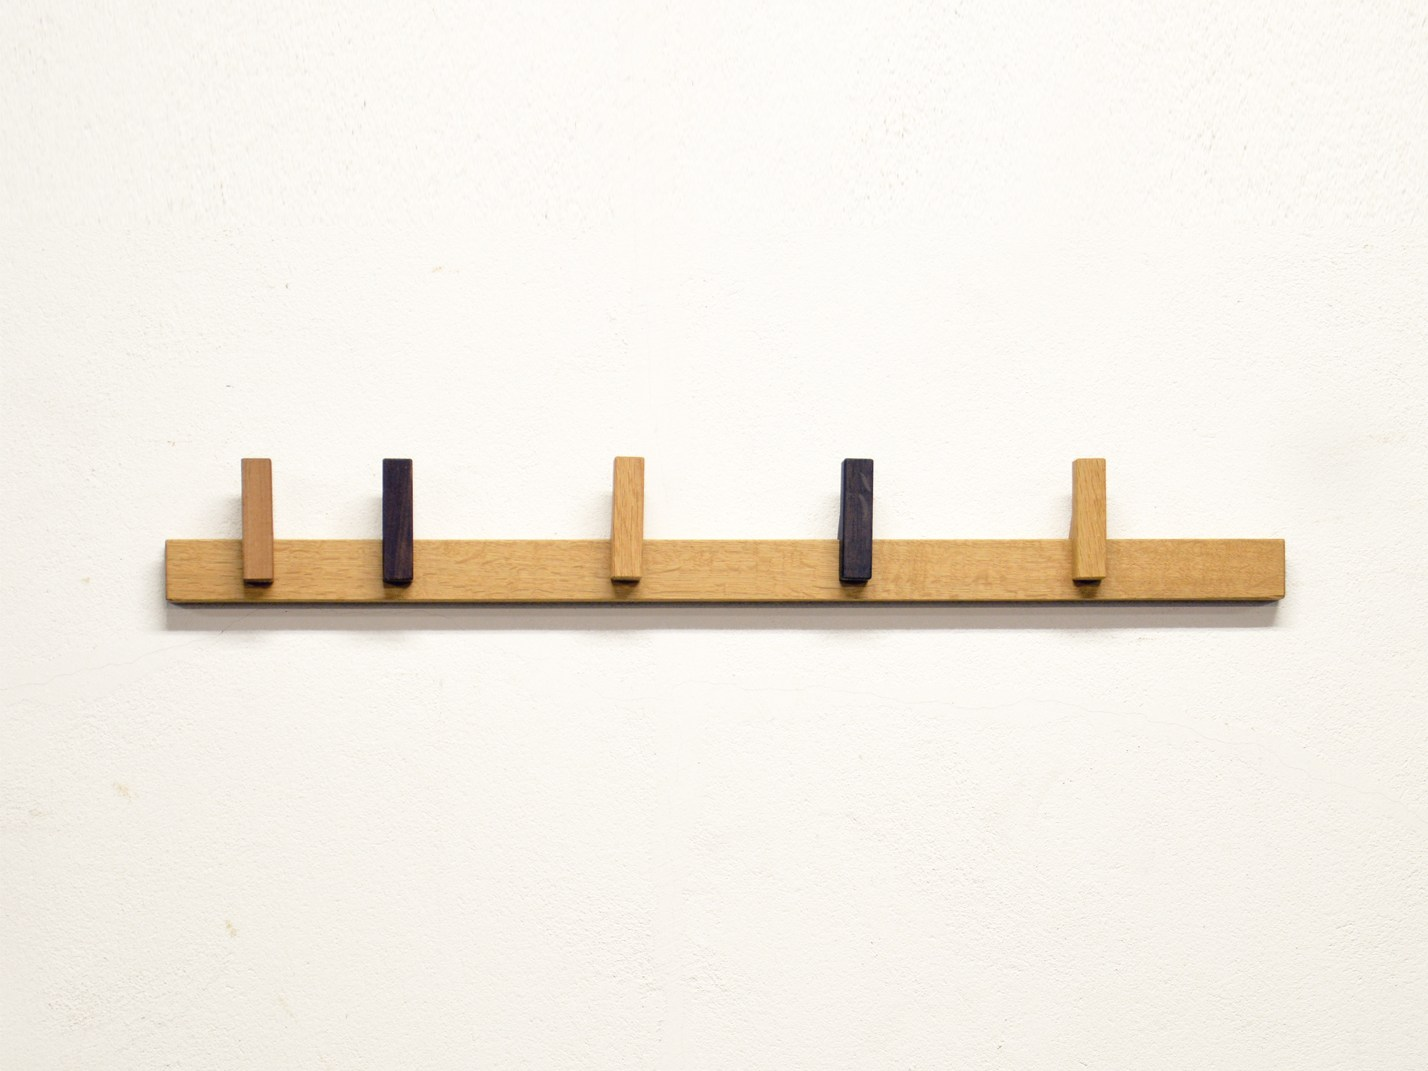 Wall mounted wooden coat rack COAT RACK by AGUSTAV